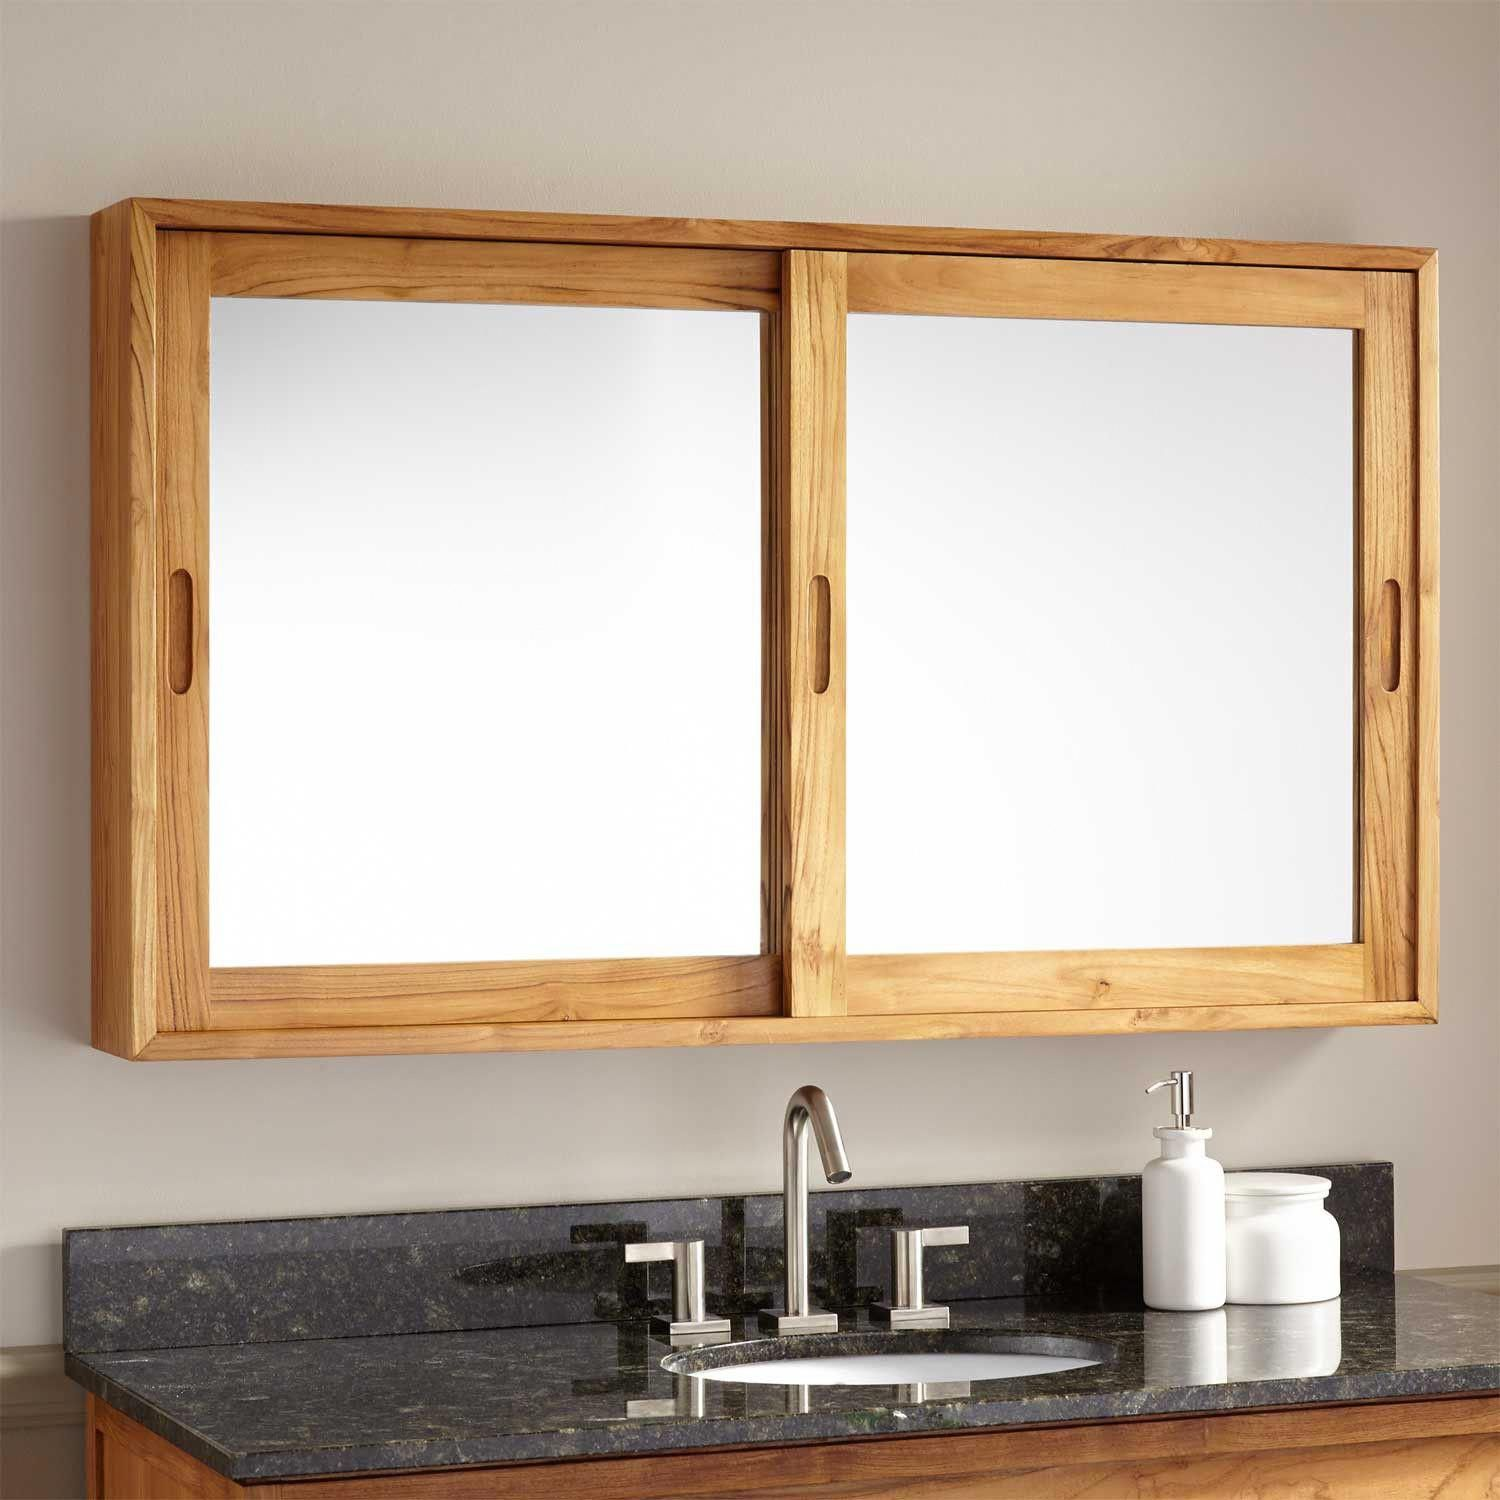 Recessed Barn Wood Medicine Cabinet With Mirror Made From 1800s Barn Wood Rustic Medicine Cabinet Rustic Medicine Cabinet Rustic Medicine Cabinets Wood Medicine Cabinet With Mirror